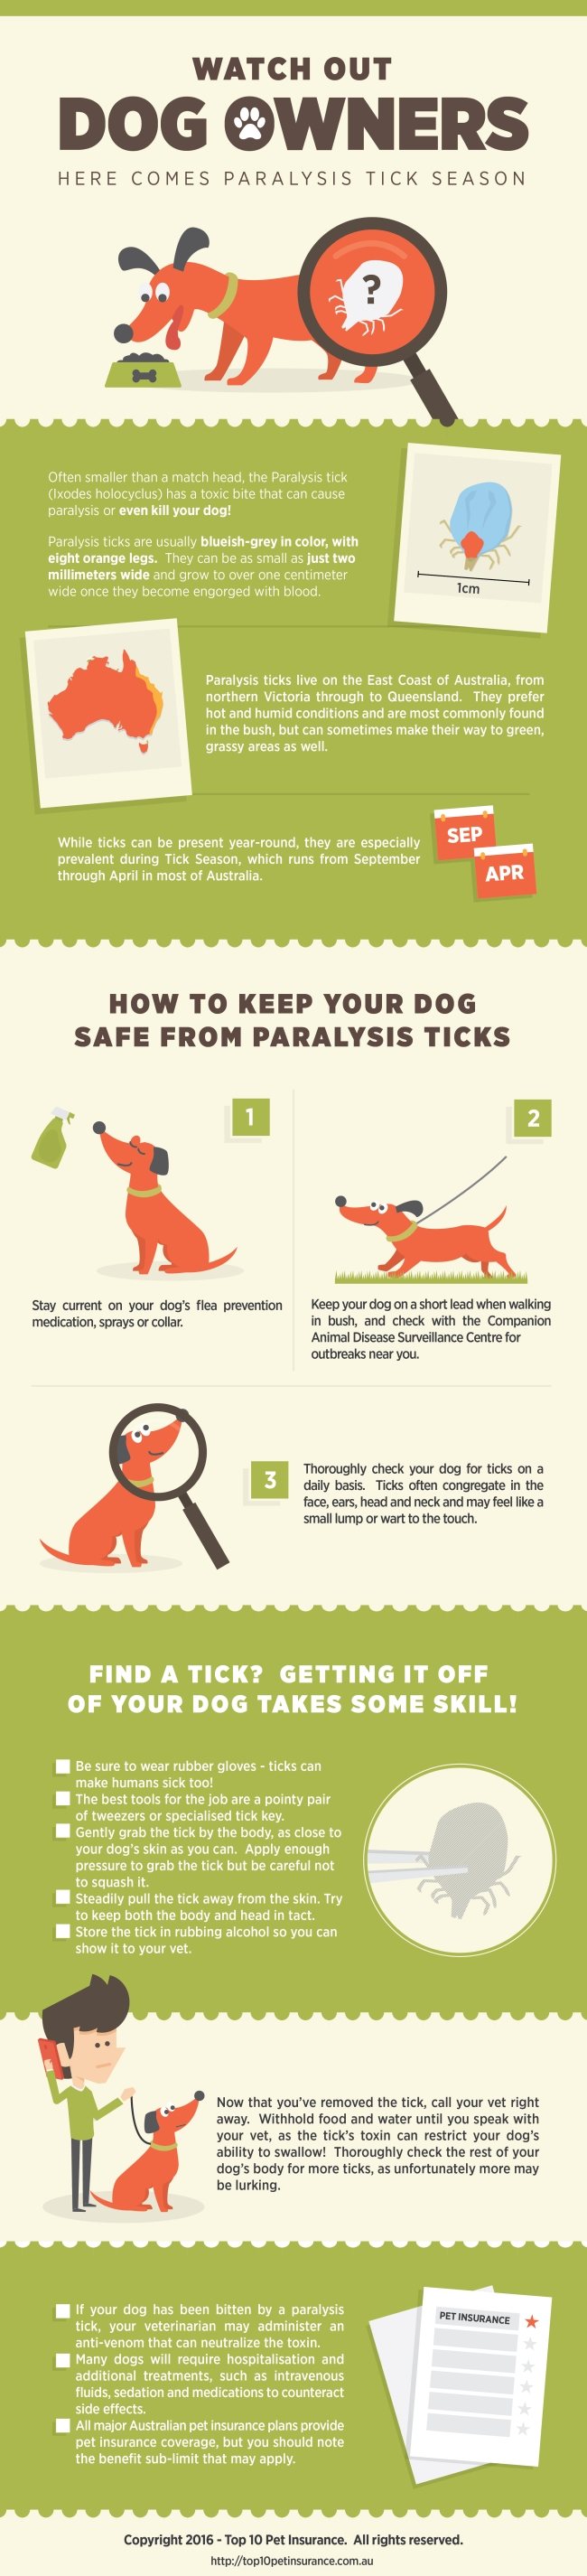 Keep Your Dog Safe from Paralysis Ticks